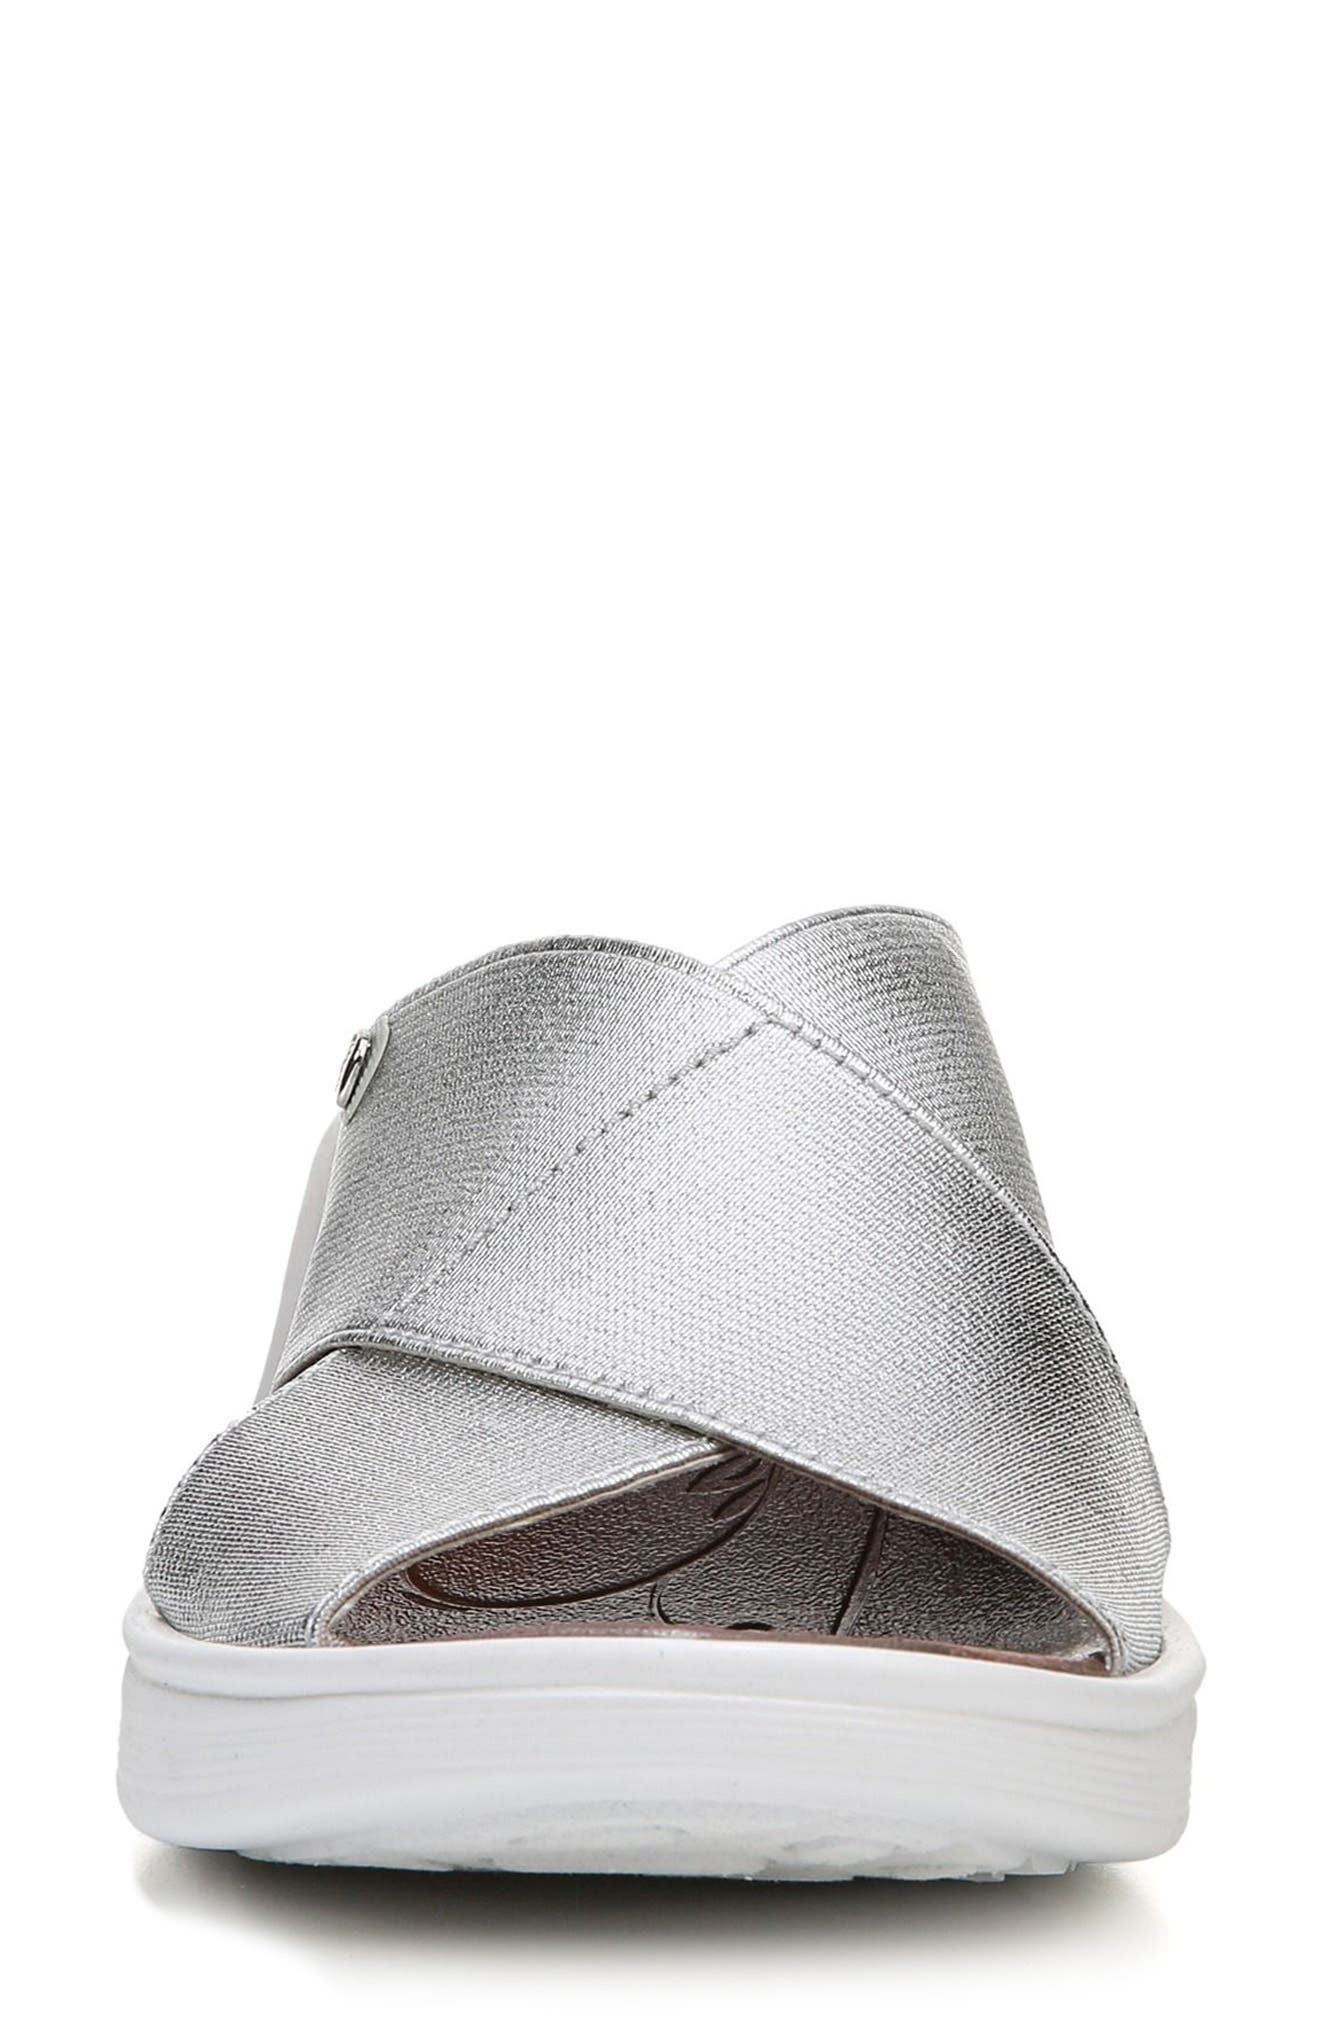 'Desire' Wedge Sandal,                             Alternate thumbnail 4, color,                             SILVER METALLIC